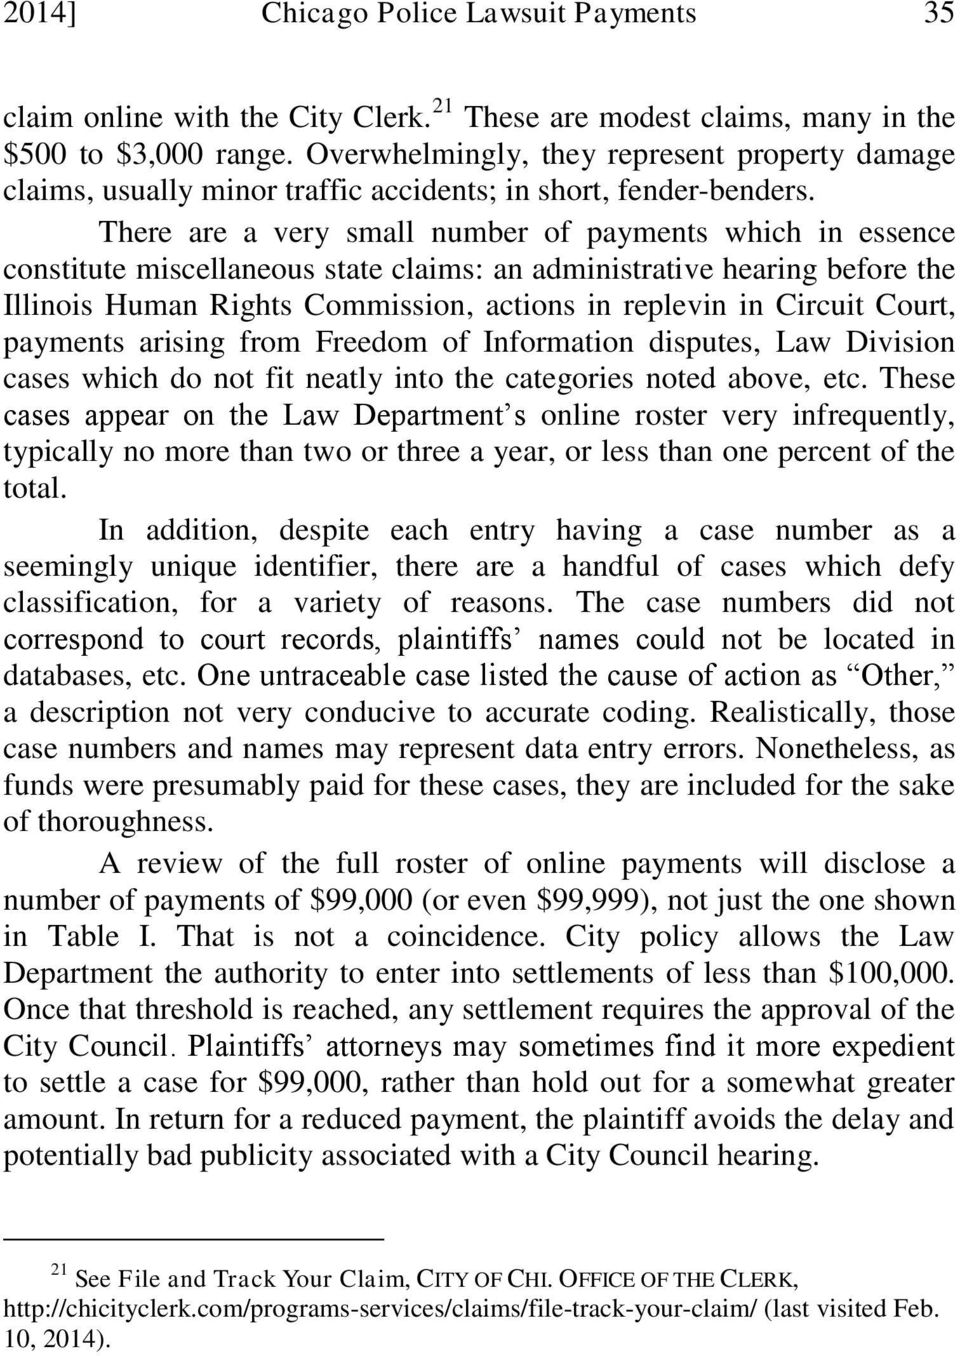 There are a very small number of payments which in essence constitute miscellaneous state claims: an administrative hearing before the Illinois Human Rights Commission, actions in replevin in Circuit